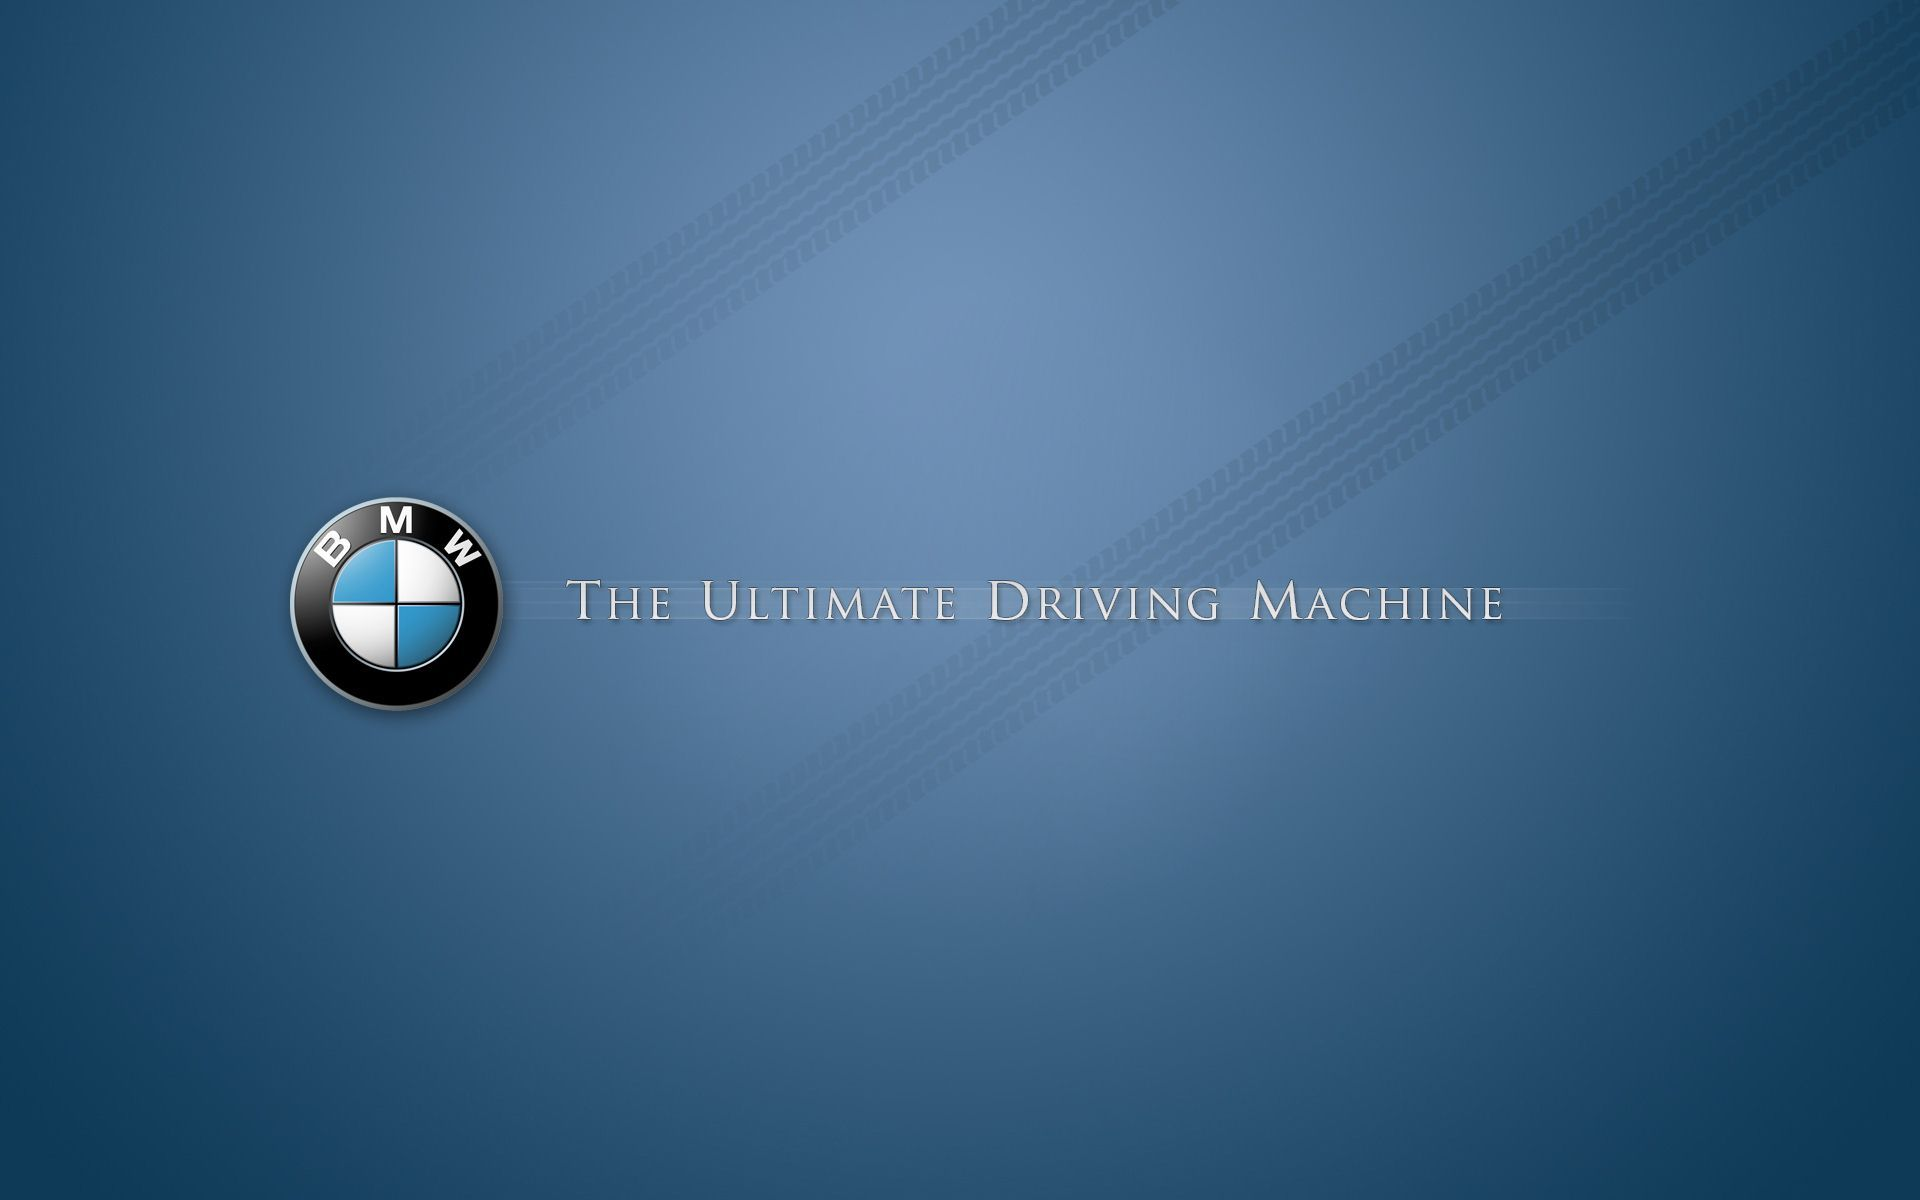 adorable bmw m logo bmw wallpapers hd wallpaper x pixels | hd